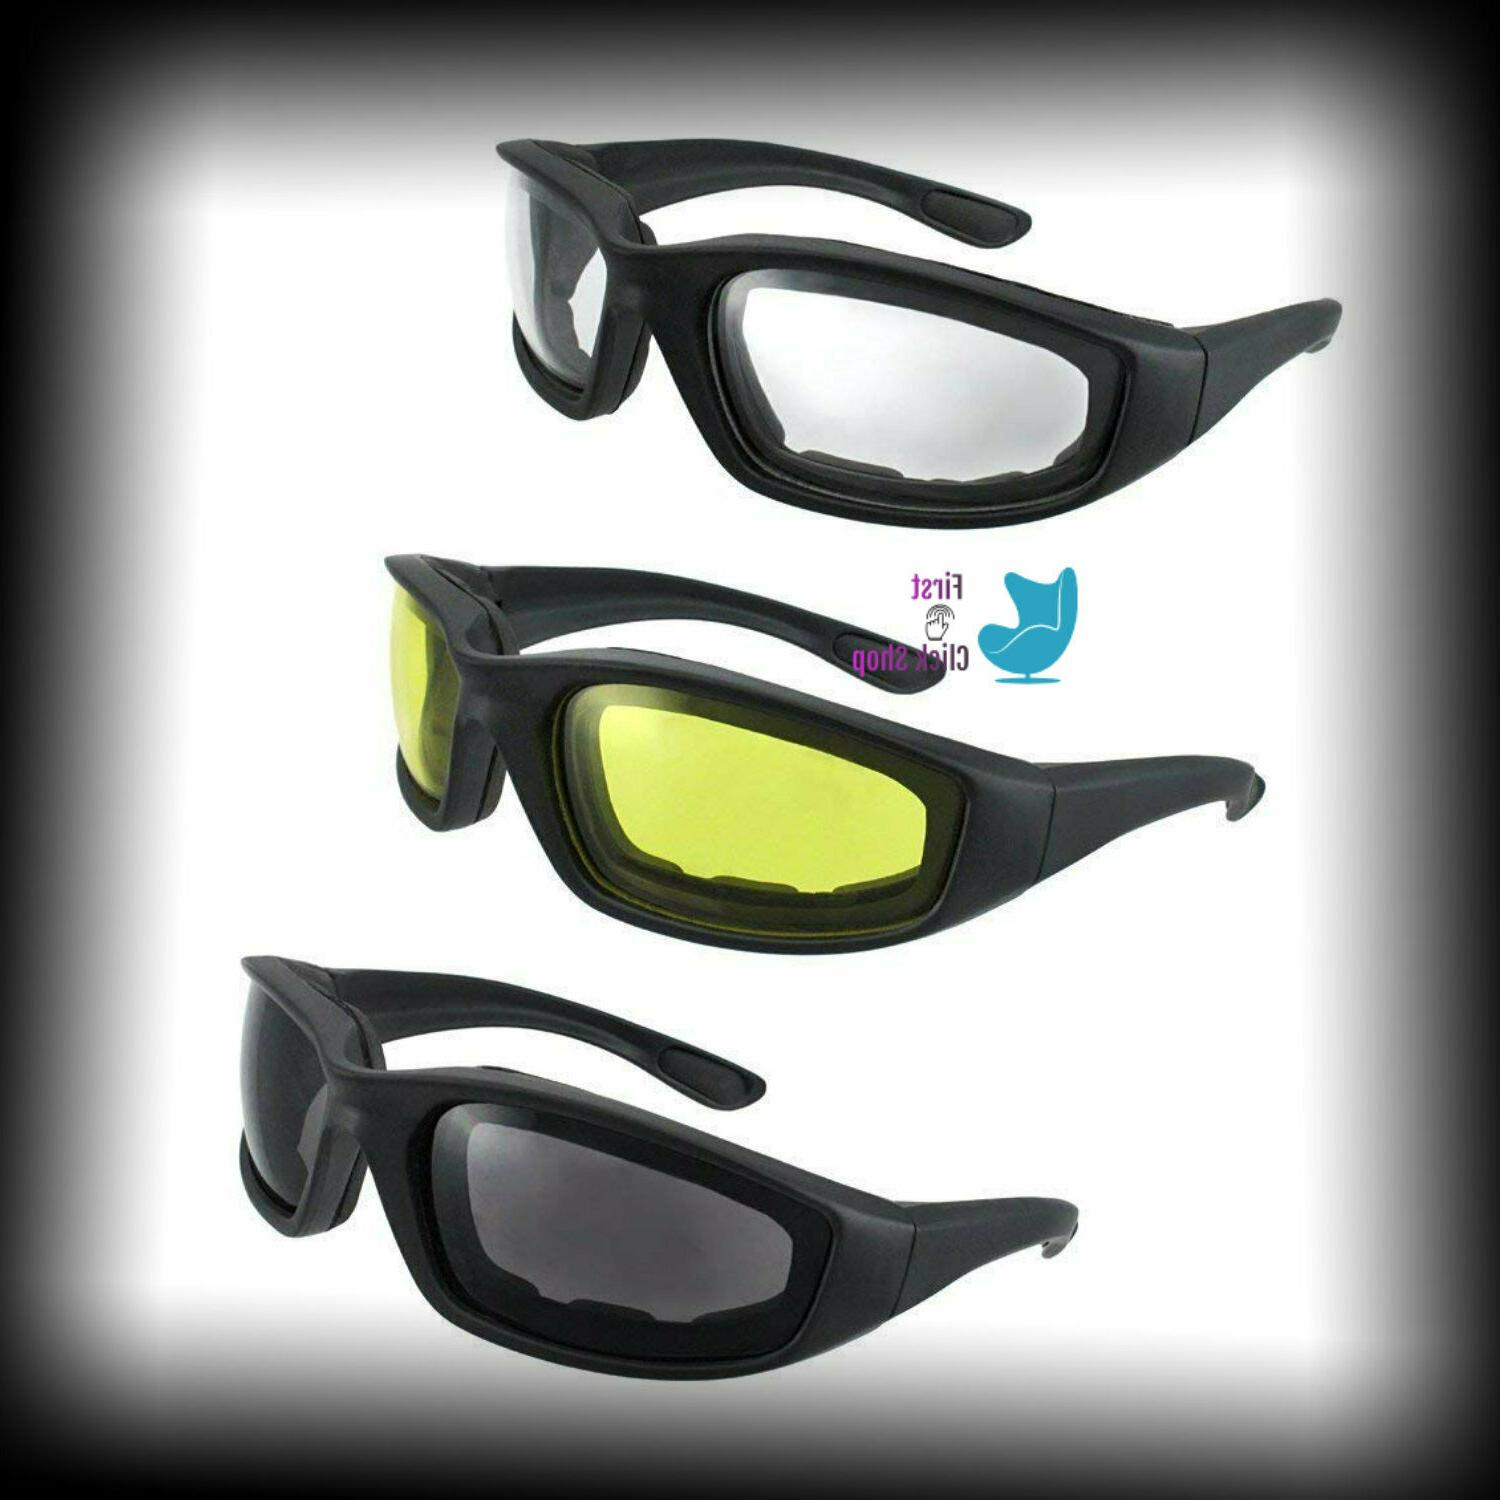 3 PAIR MOTORCYCLE RIDING GLASSES SMOKE CLEAR YELLOW FOR HARL